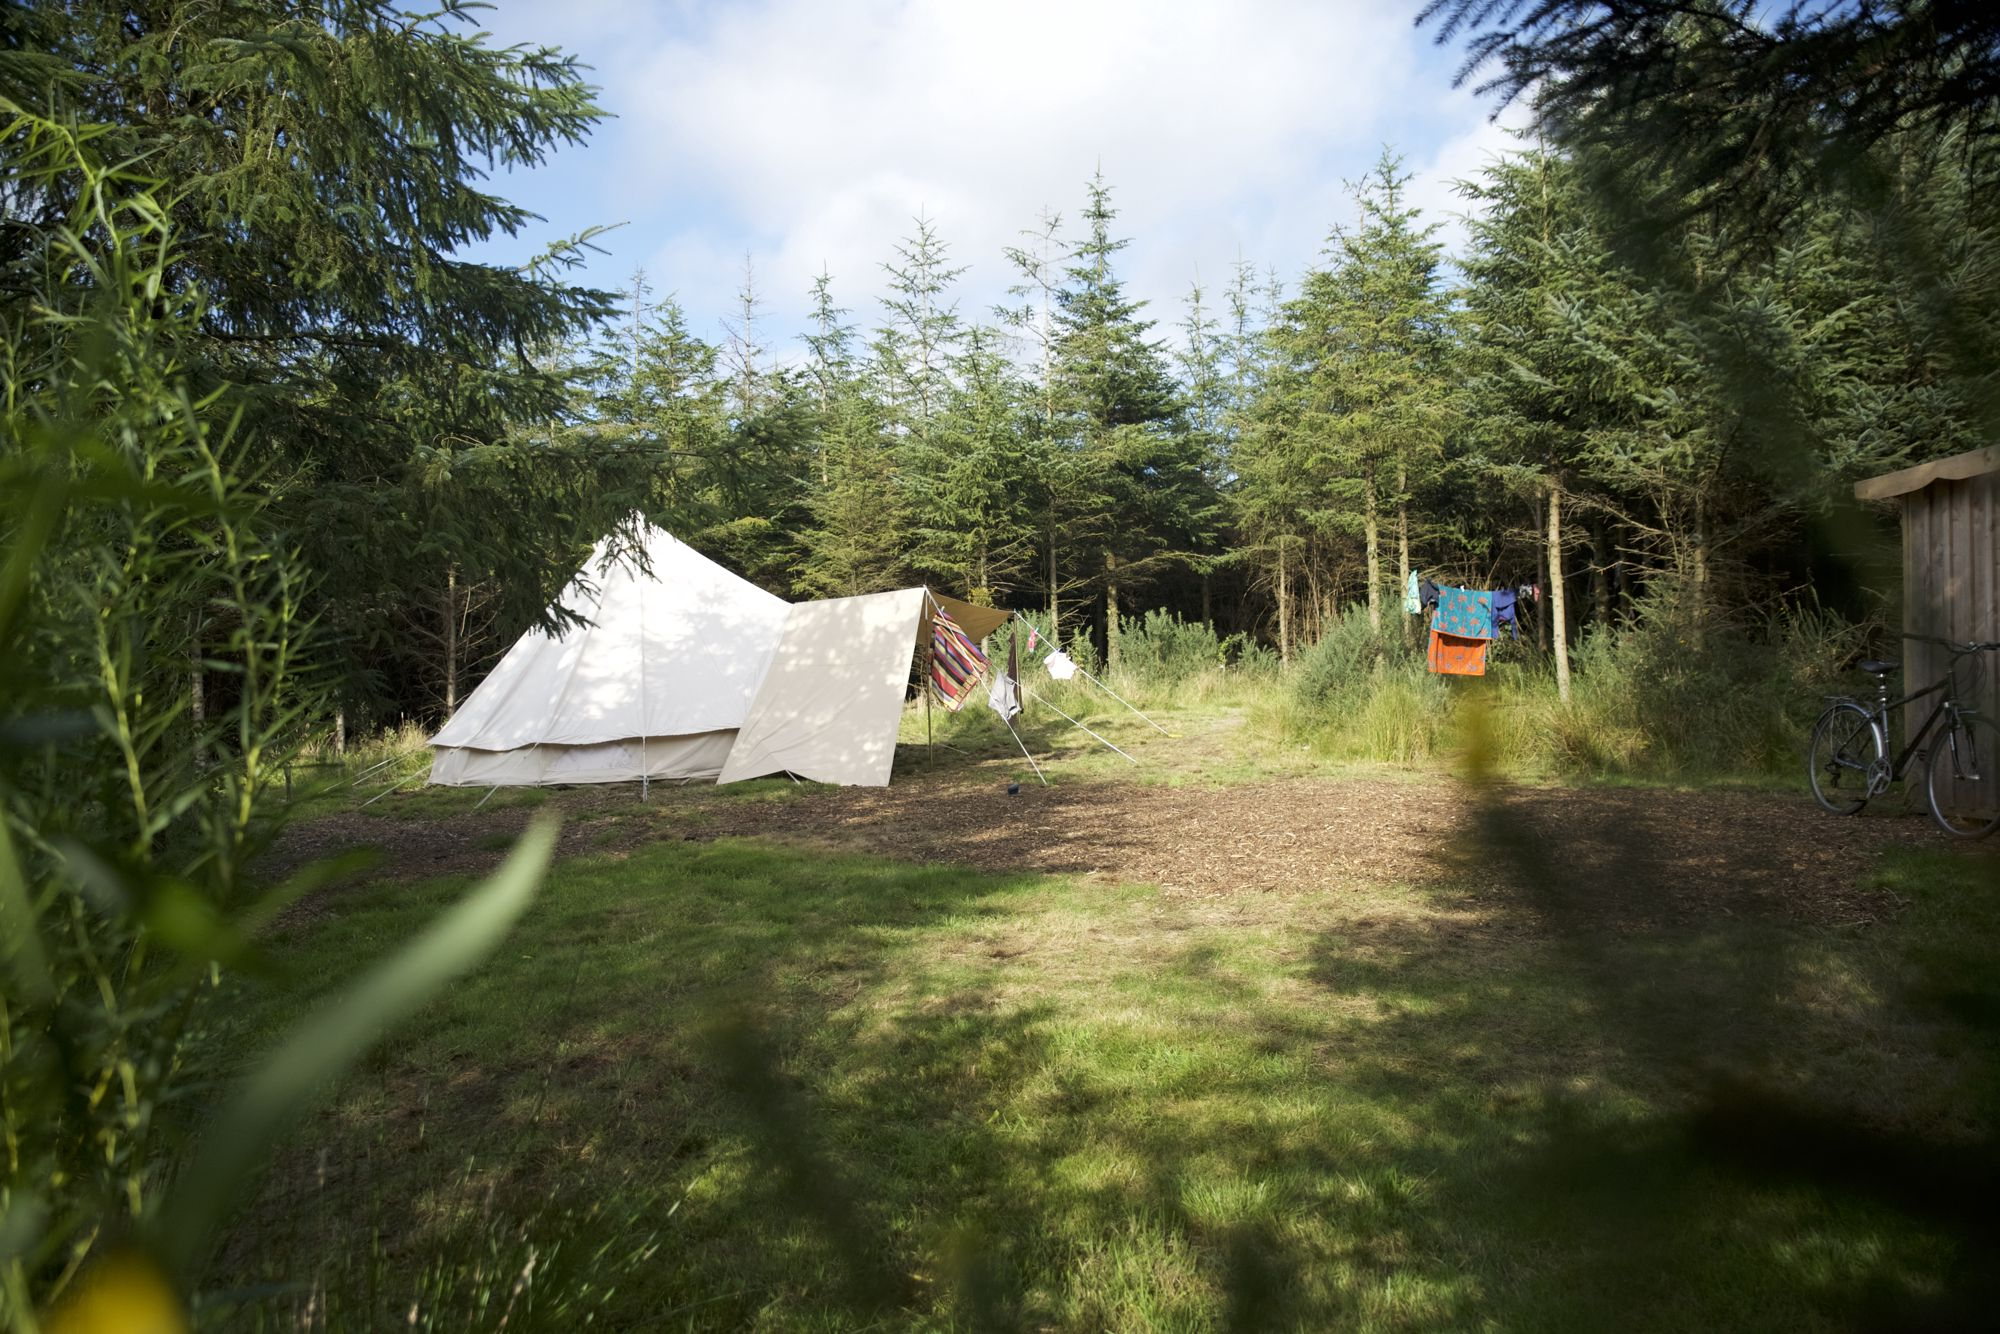 1- One of our woodland pitches - that's right all you see is just for one family.